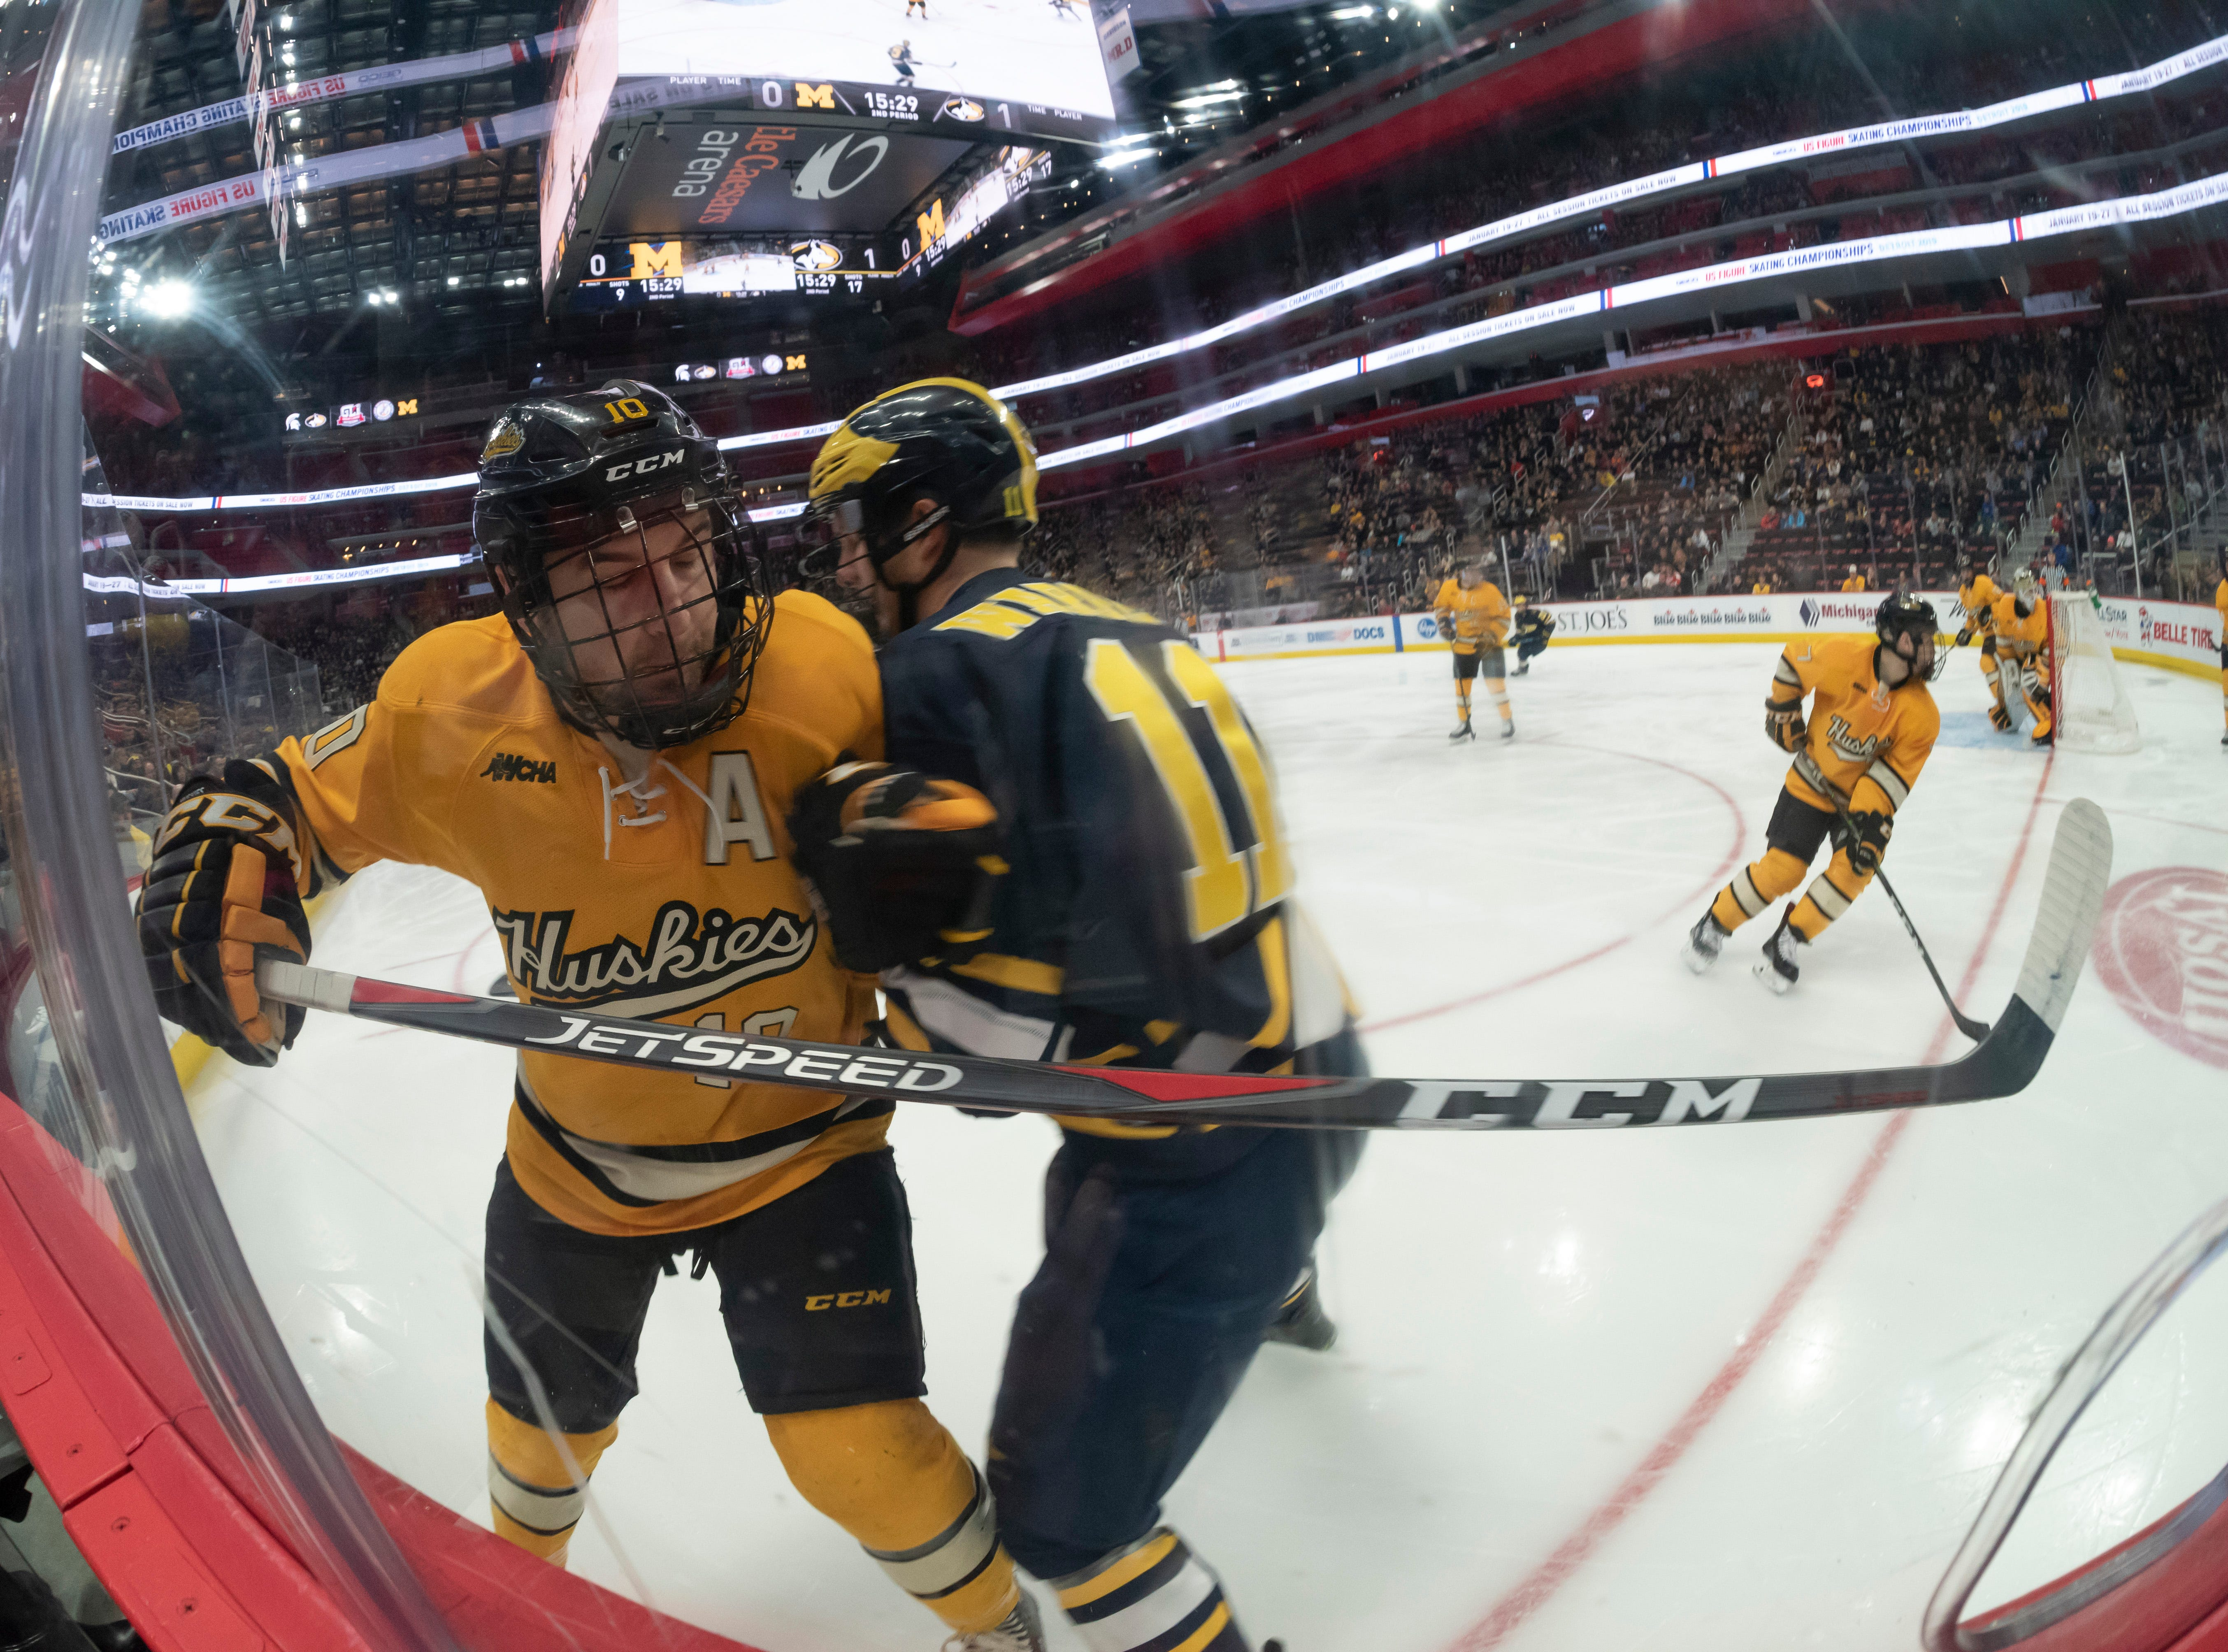 Michigan Tech forward Jake Jackson and Michigan forward Brendan Warren check each other along the boards in the second period.